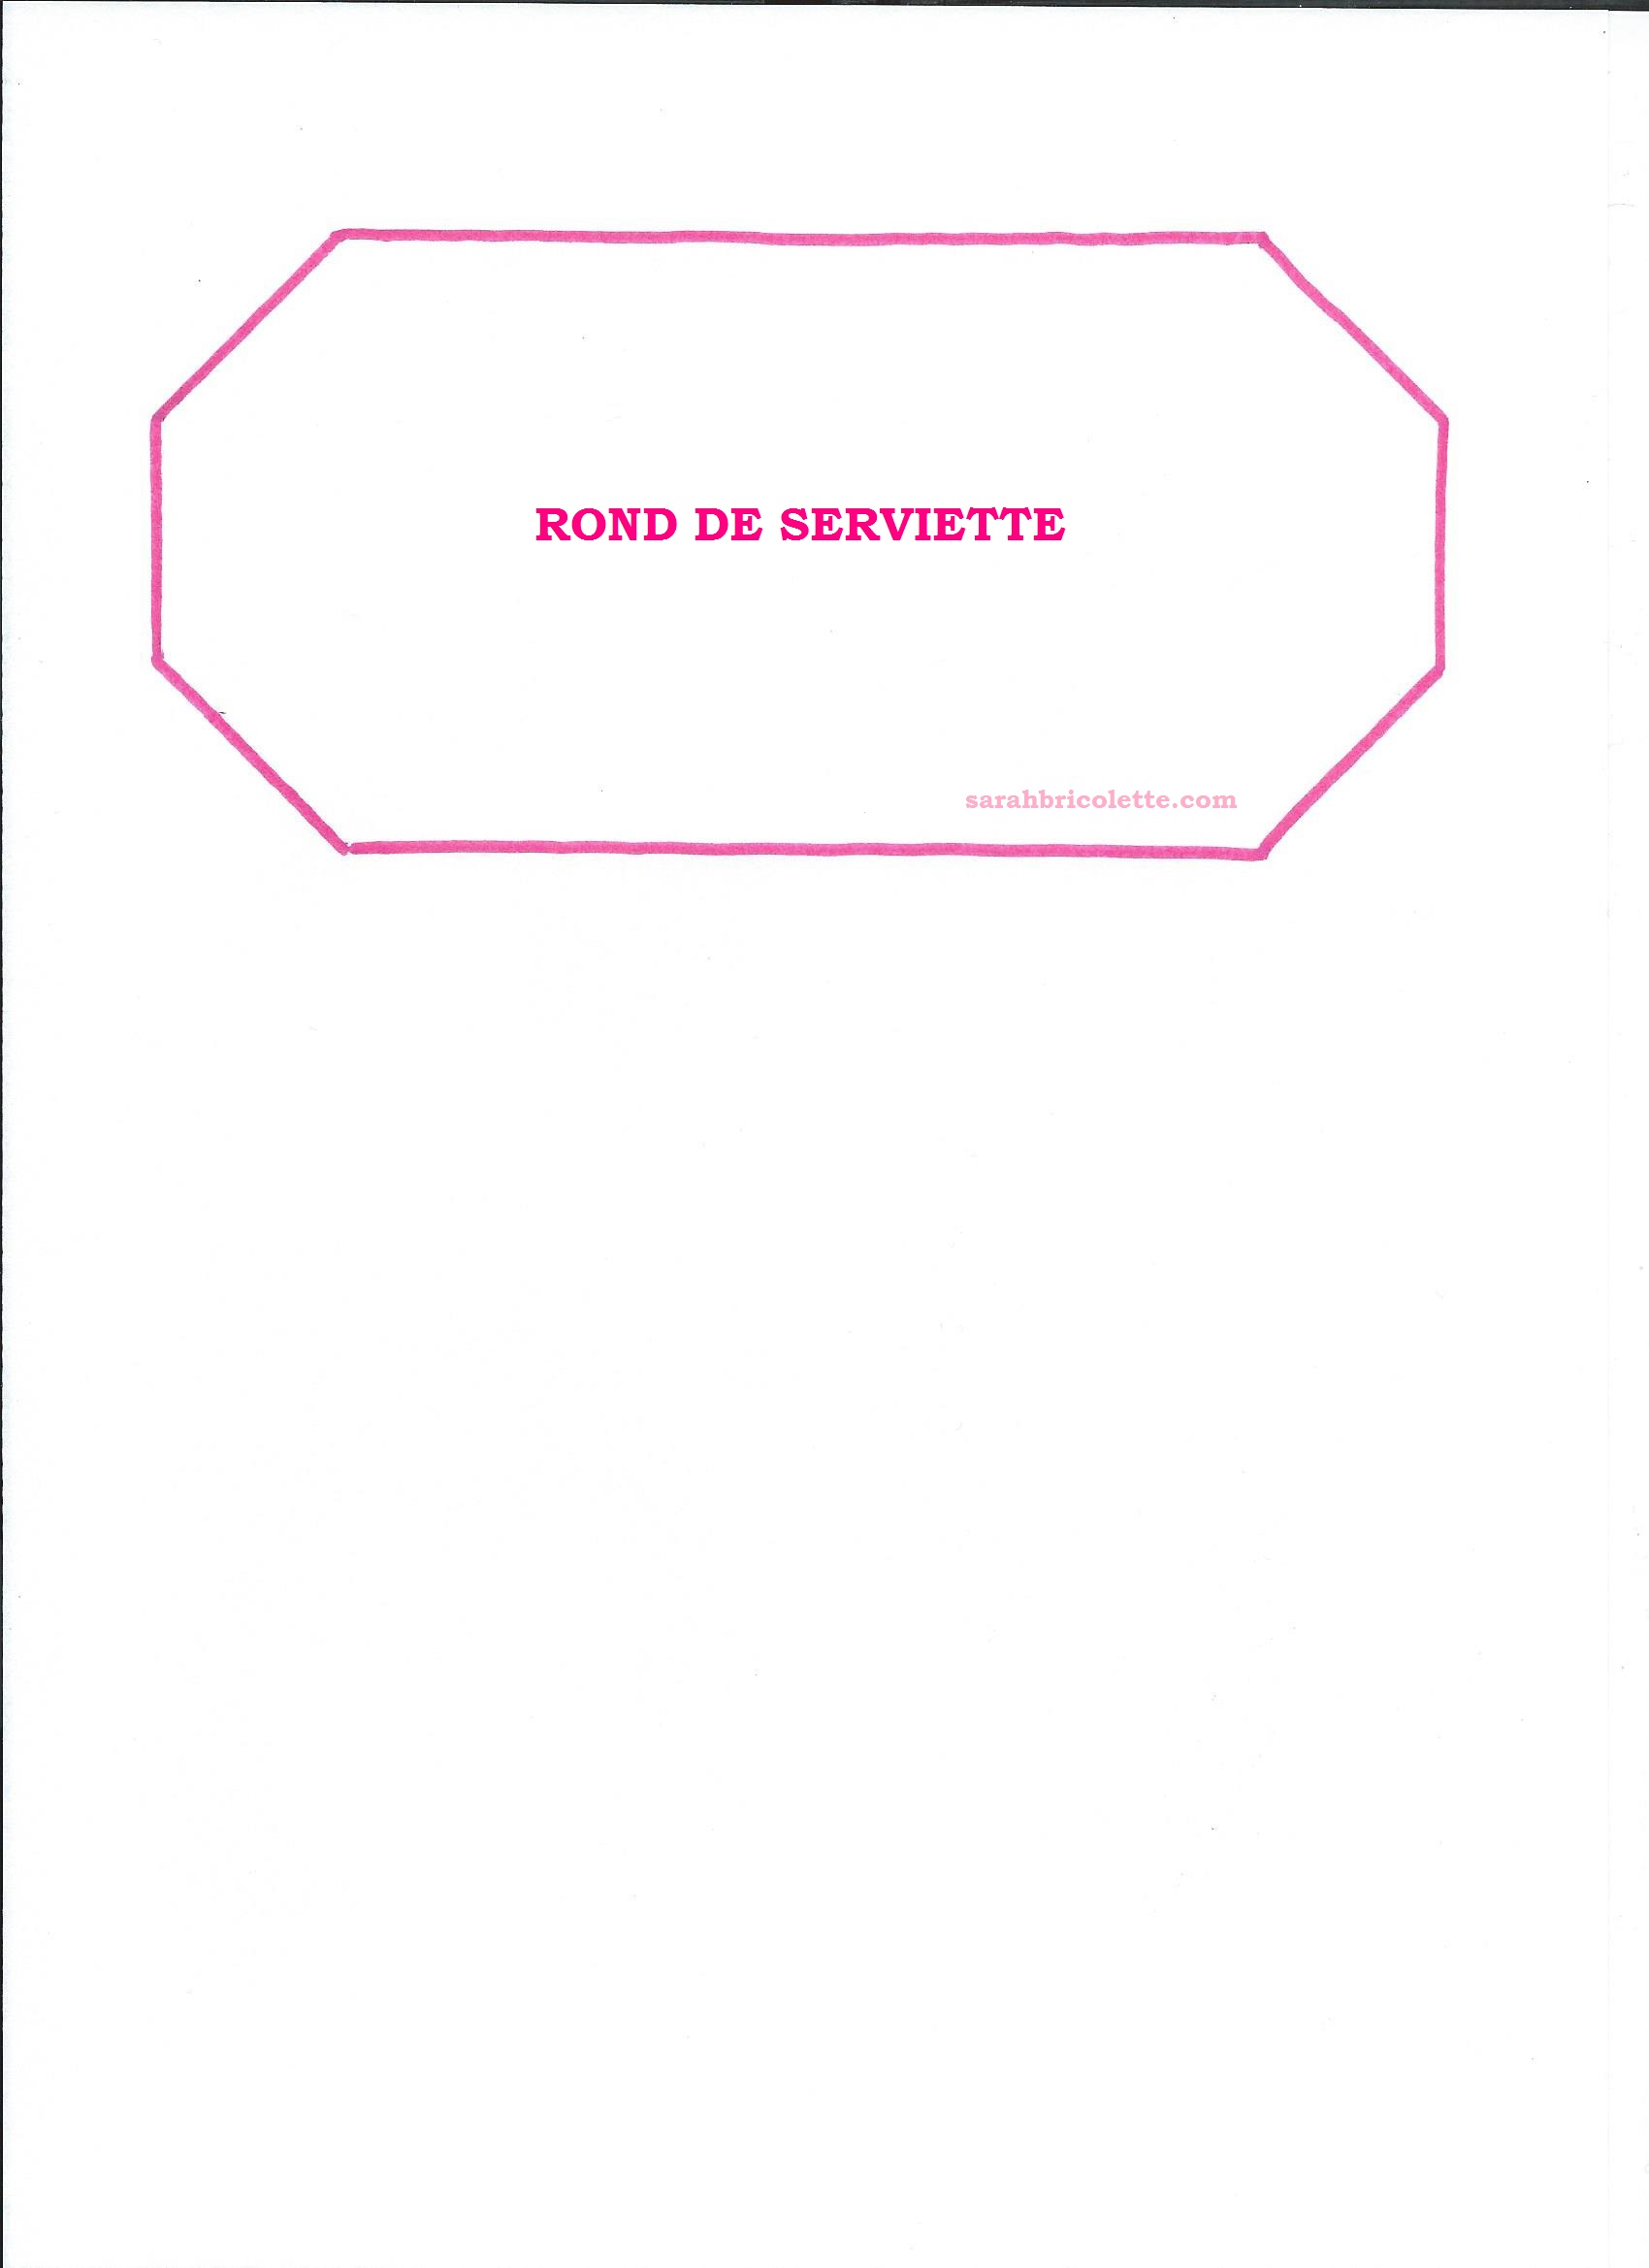 Tuto ronds de serviette sarah bricolette for Rond de serviette maison